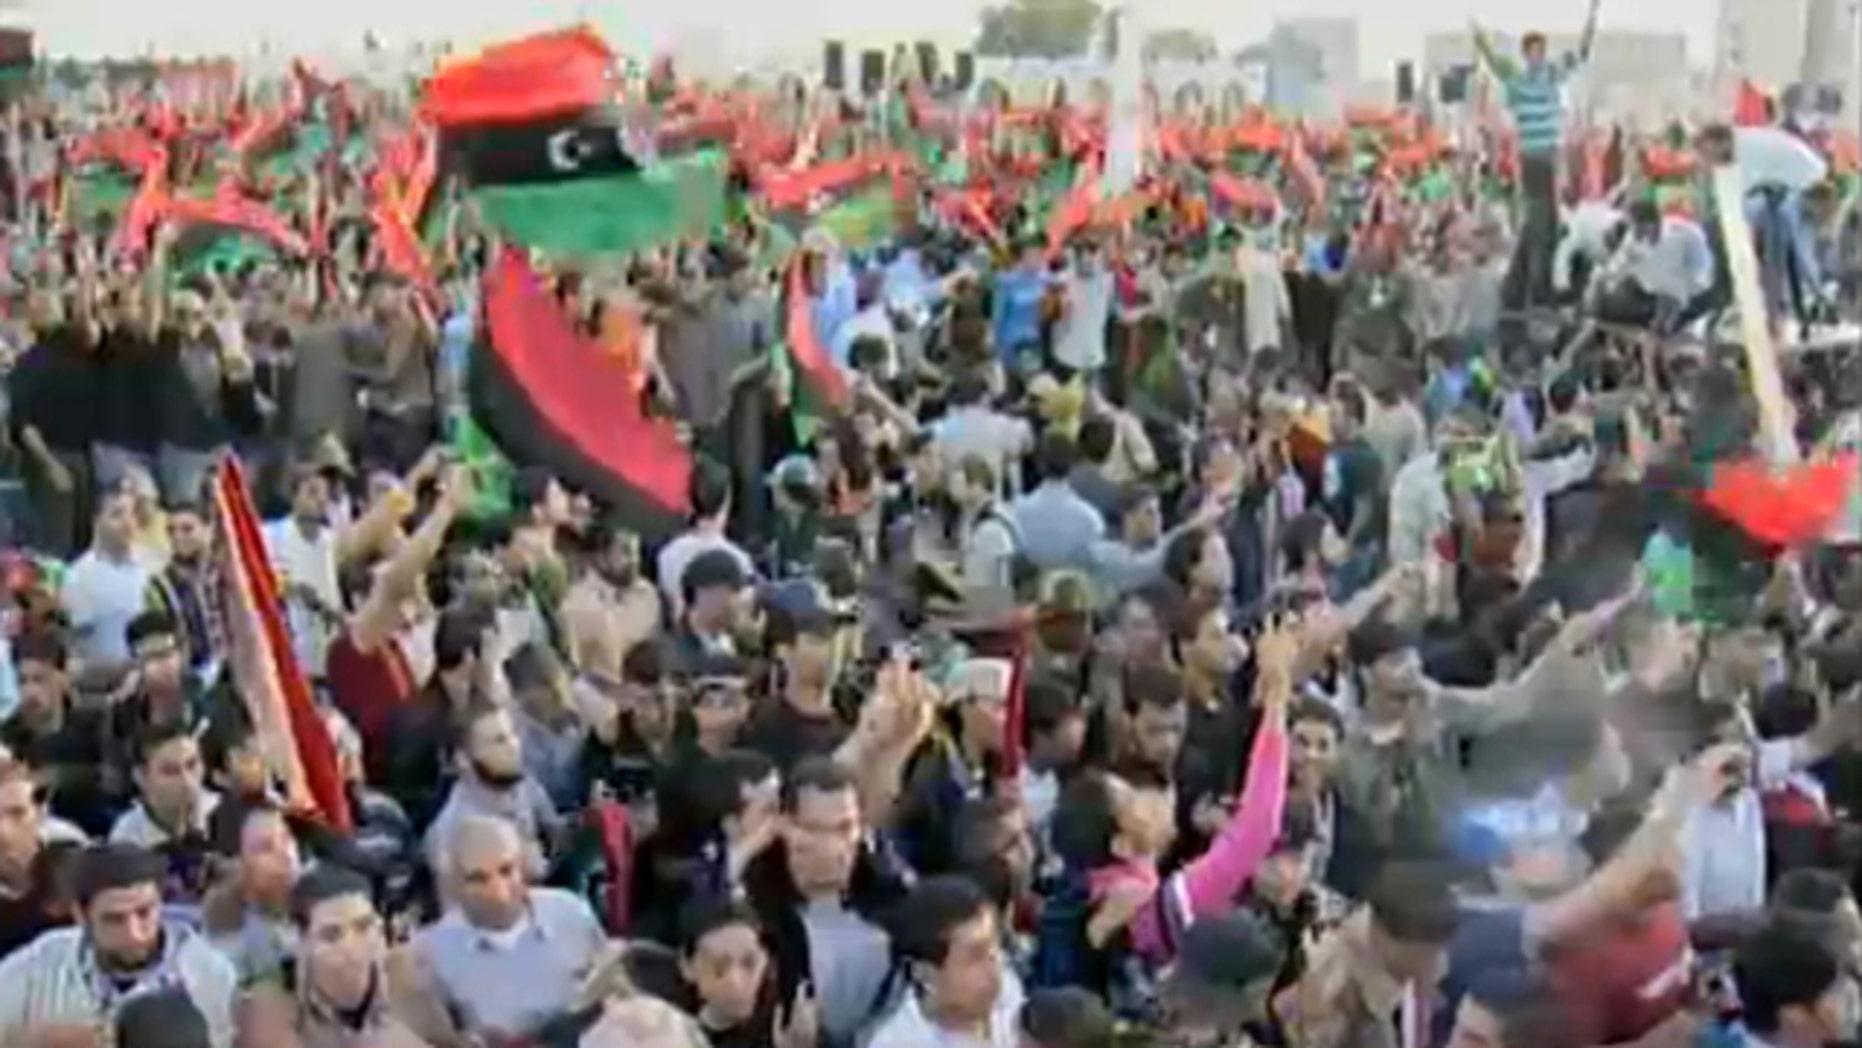 Oct. 23, 2011: In this image taken from video, Libyans cheer as the National Transitional Council declares Libya's liberation after an eight-month civil war.